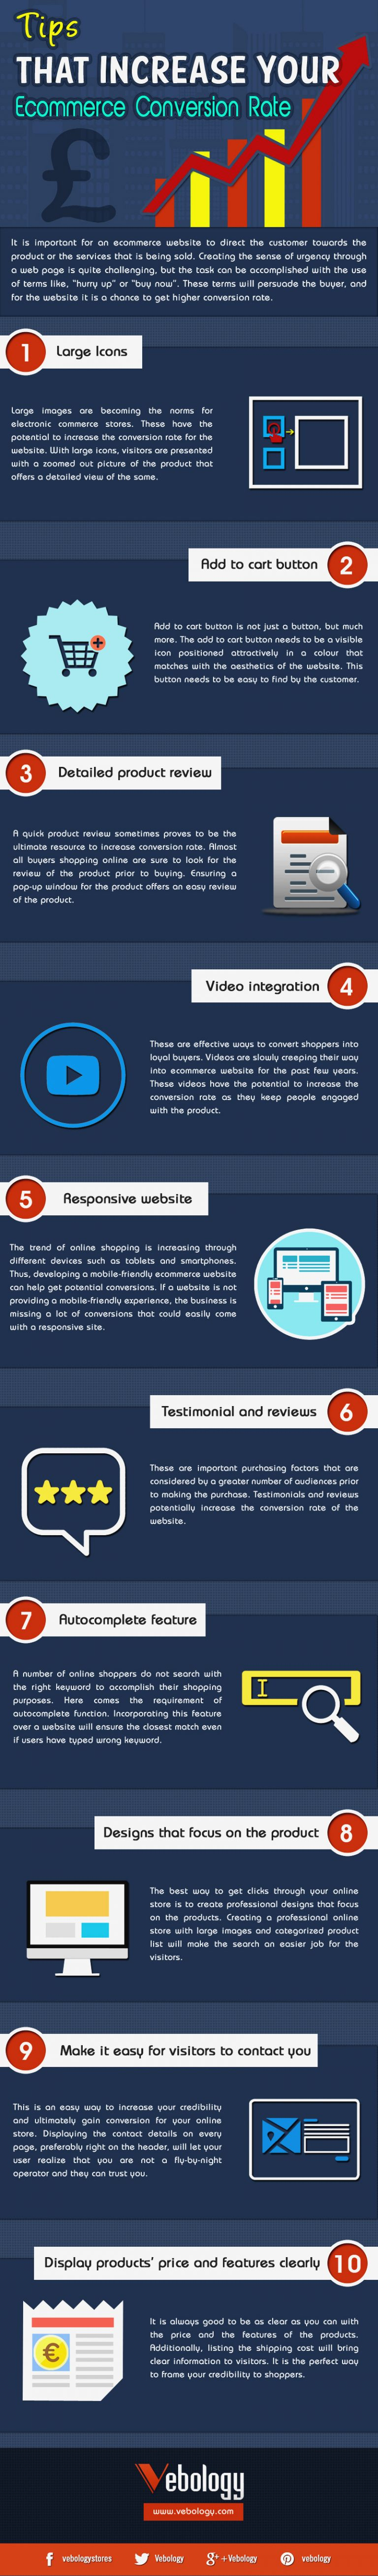 Ecommerce Conversion Rate Infographic